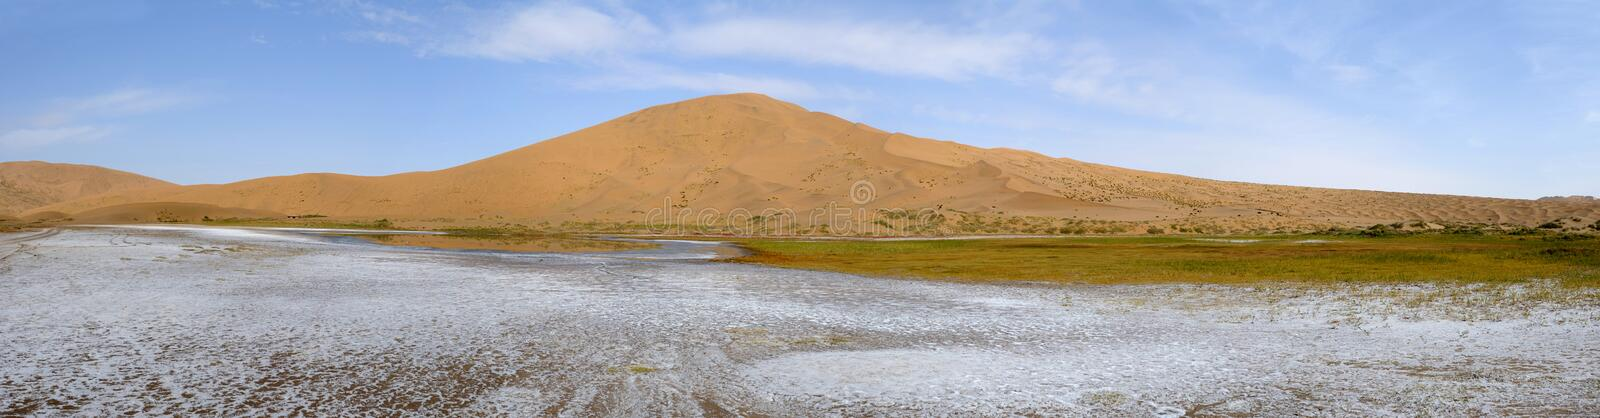 Lago salt no deserto fotos de stock royalty free